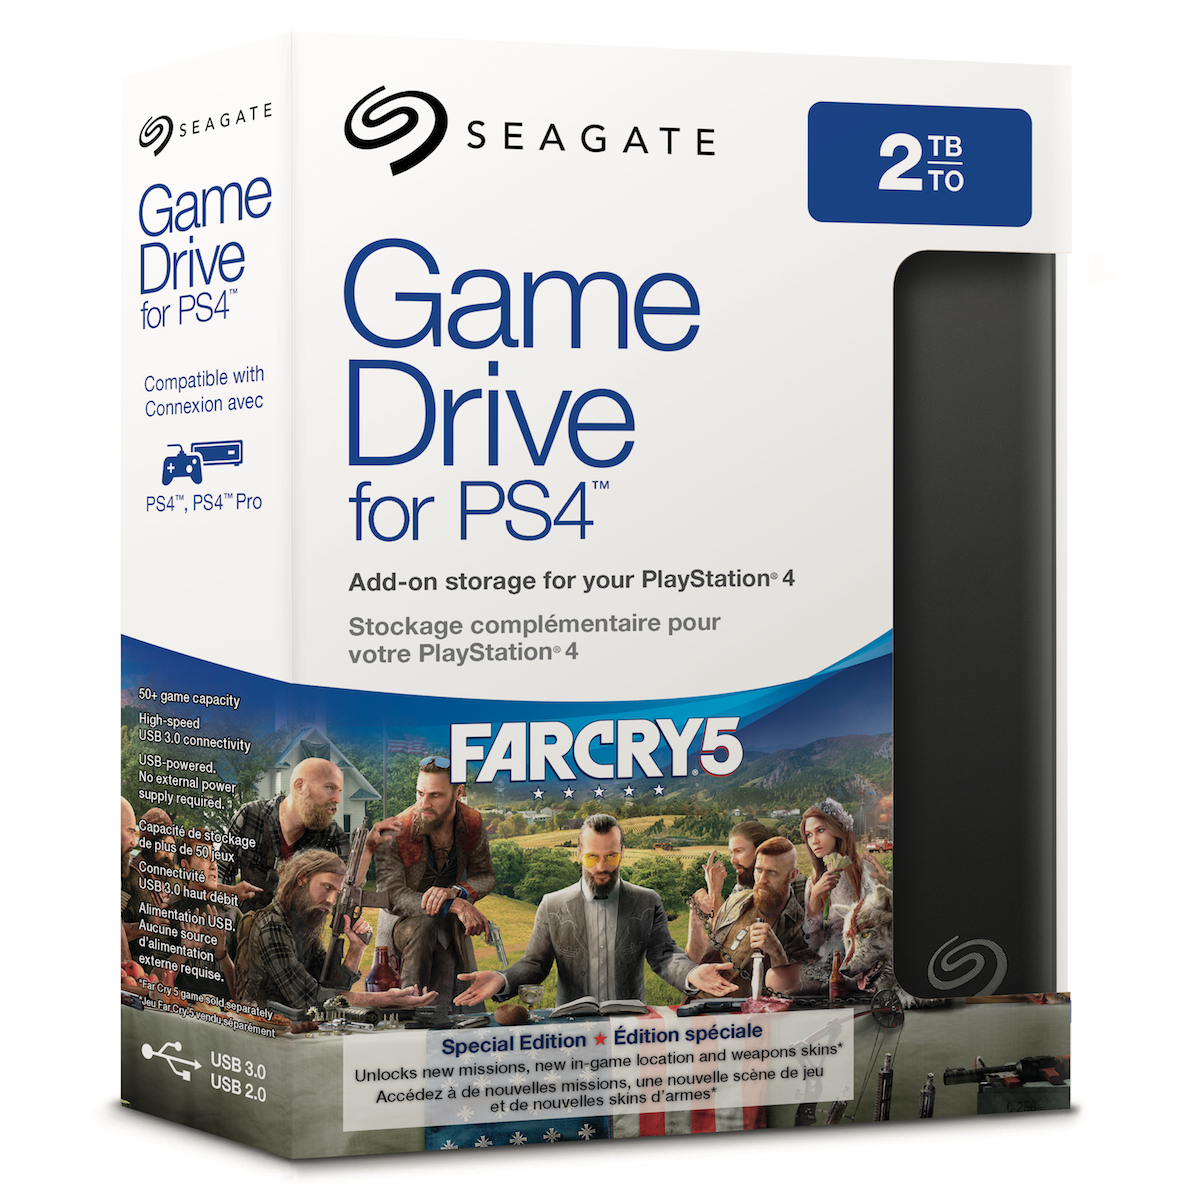 Seagate Game Drive for PS4 Far Cry 5 Special Edition